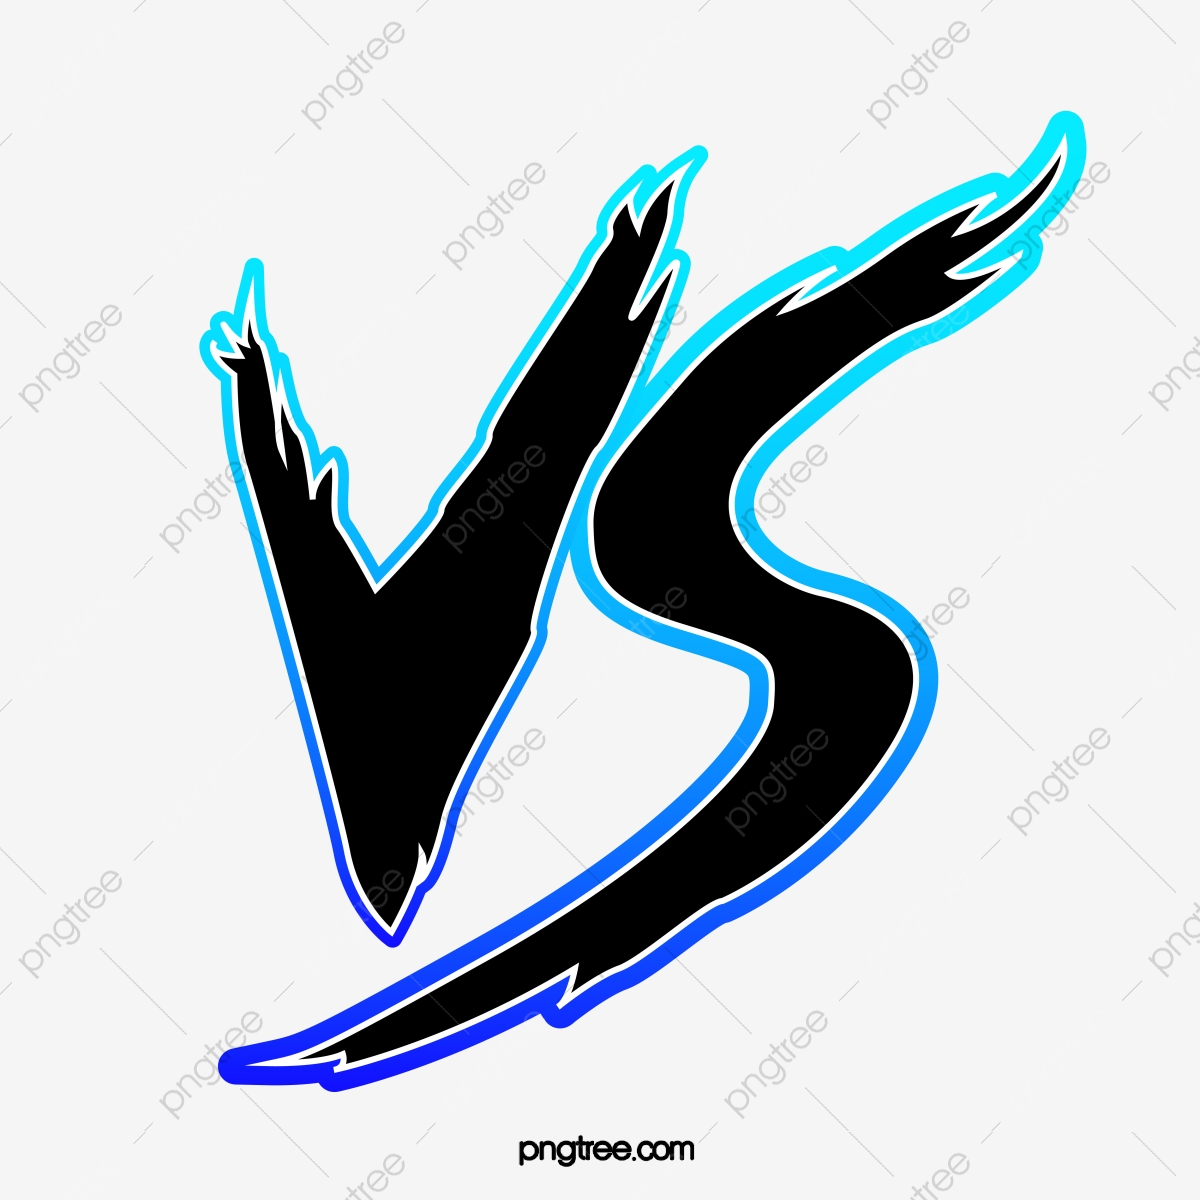 Vs, Pk Creative, Creative, Pk PNG and Vector with Transparent ...